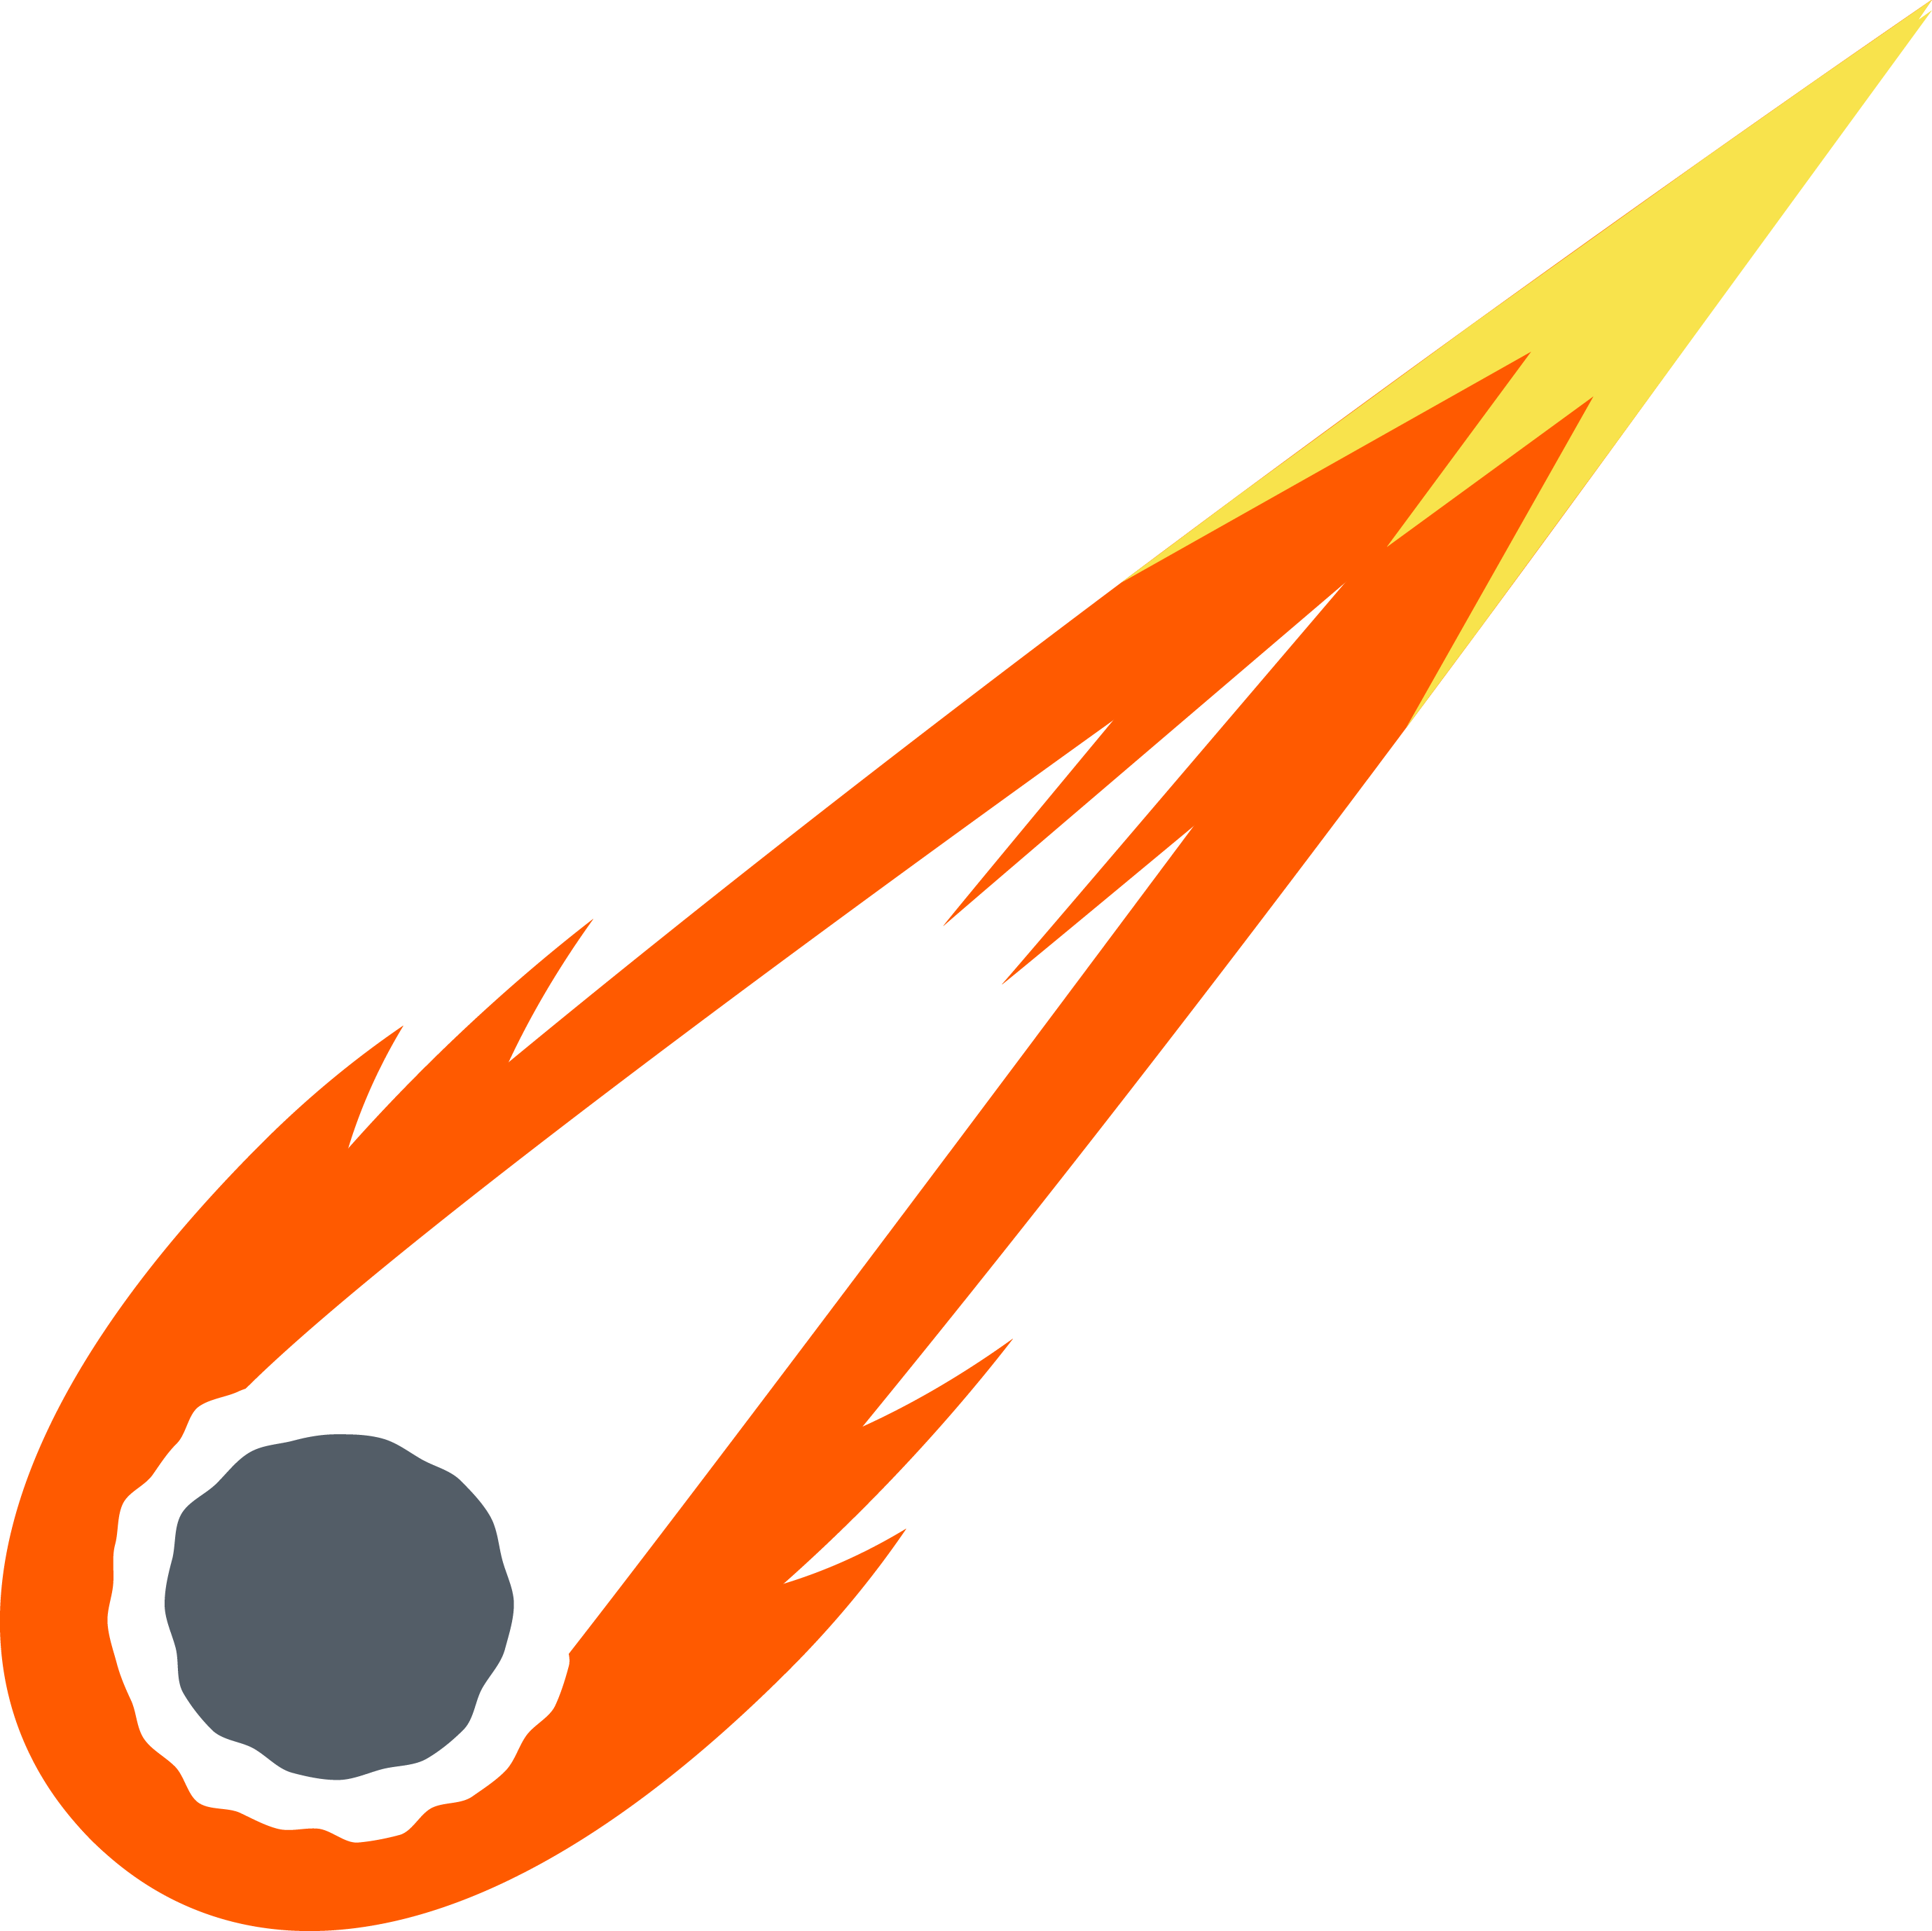 jpg Asteroid clipart comet tail. Clip art free on